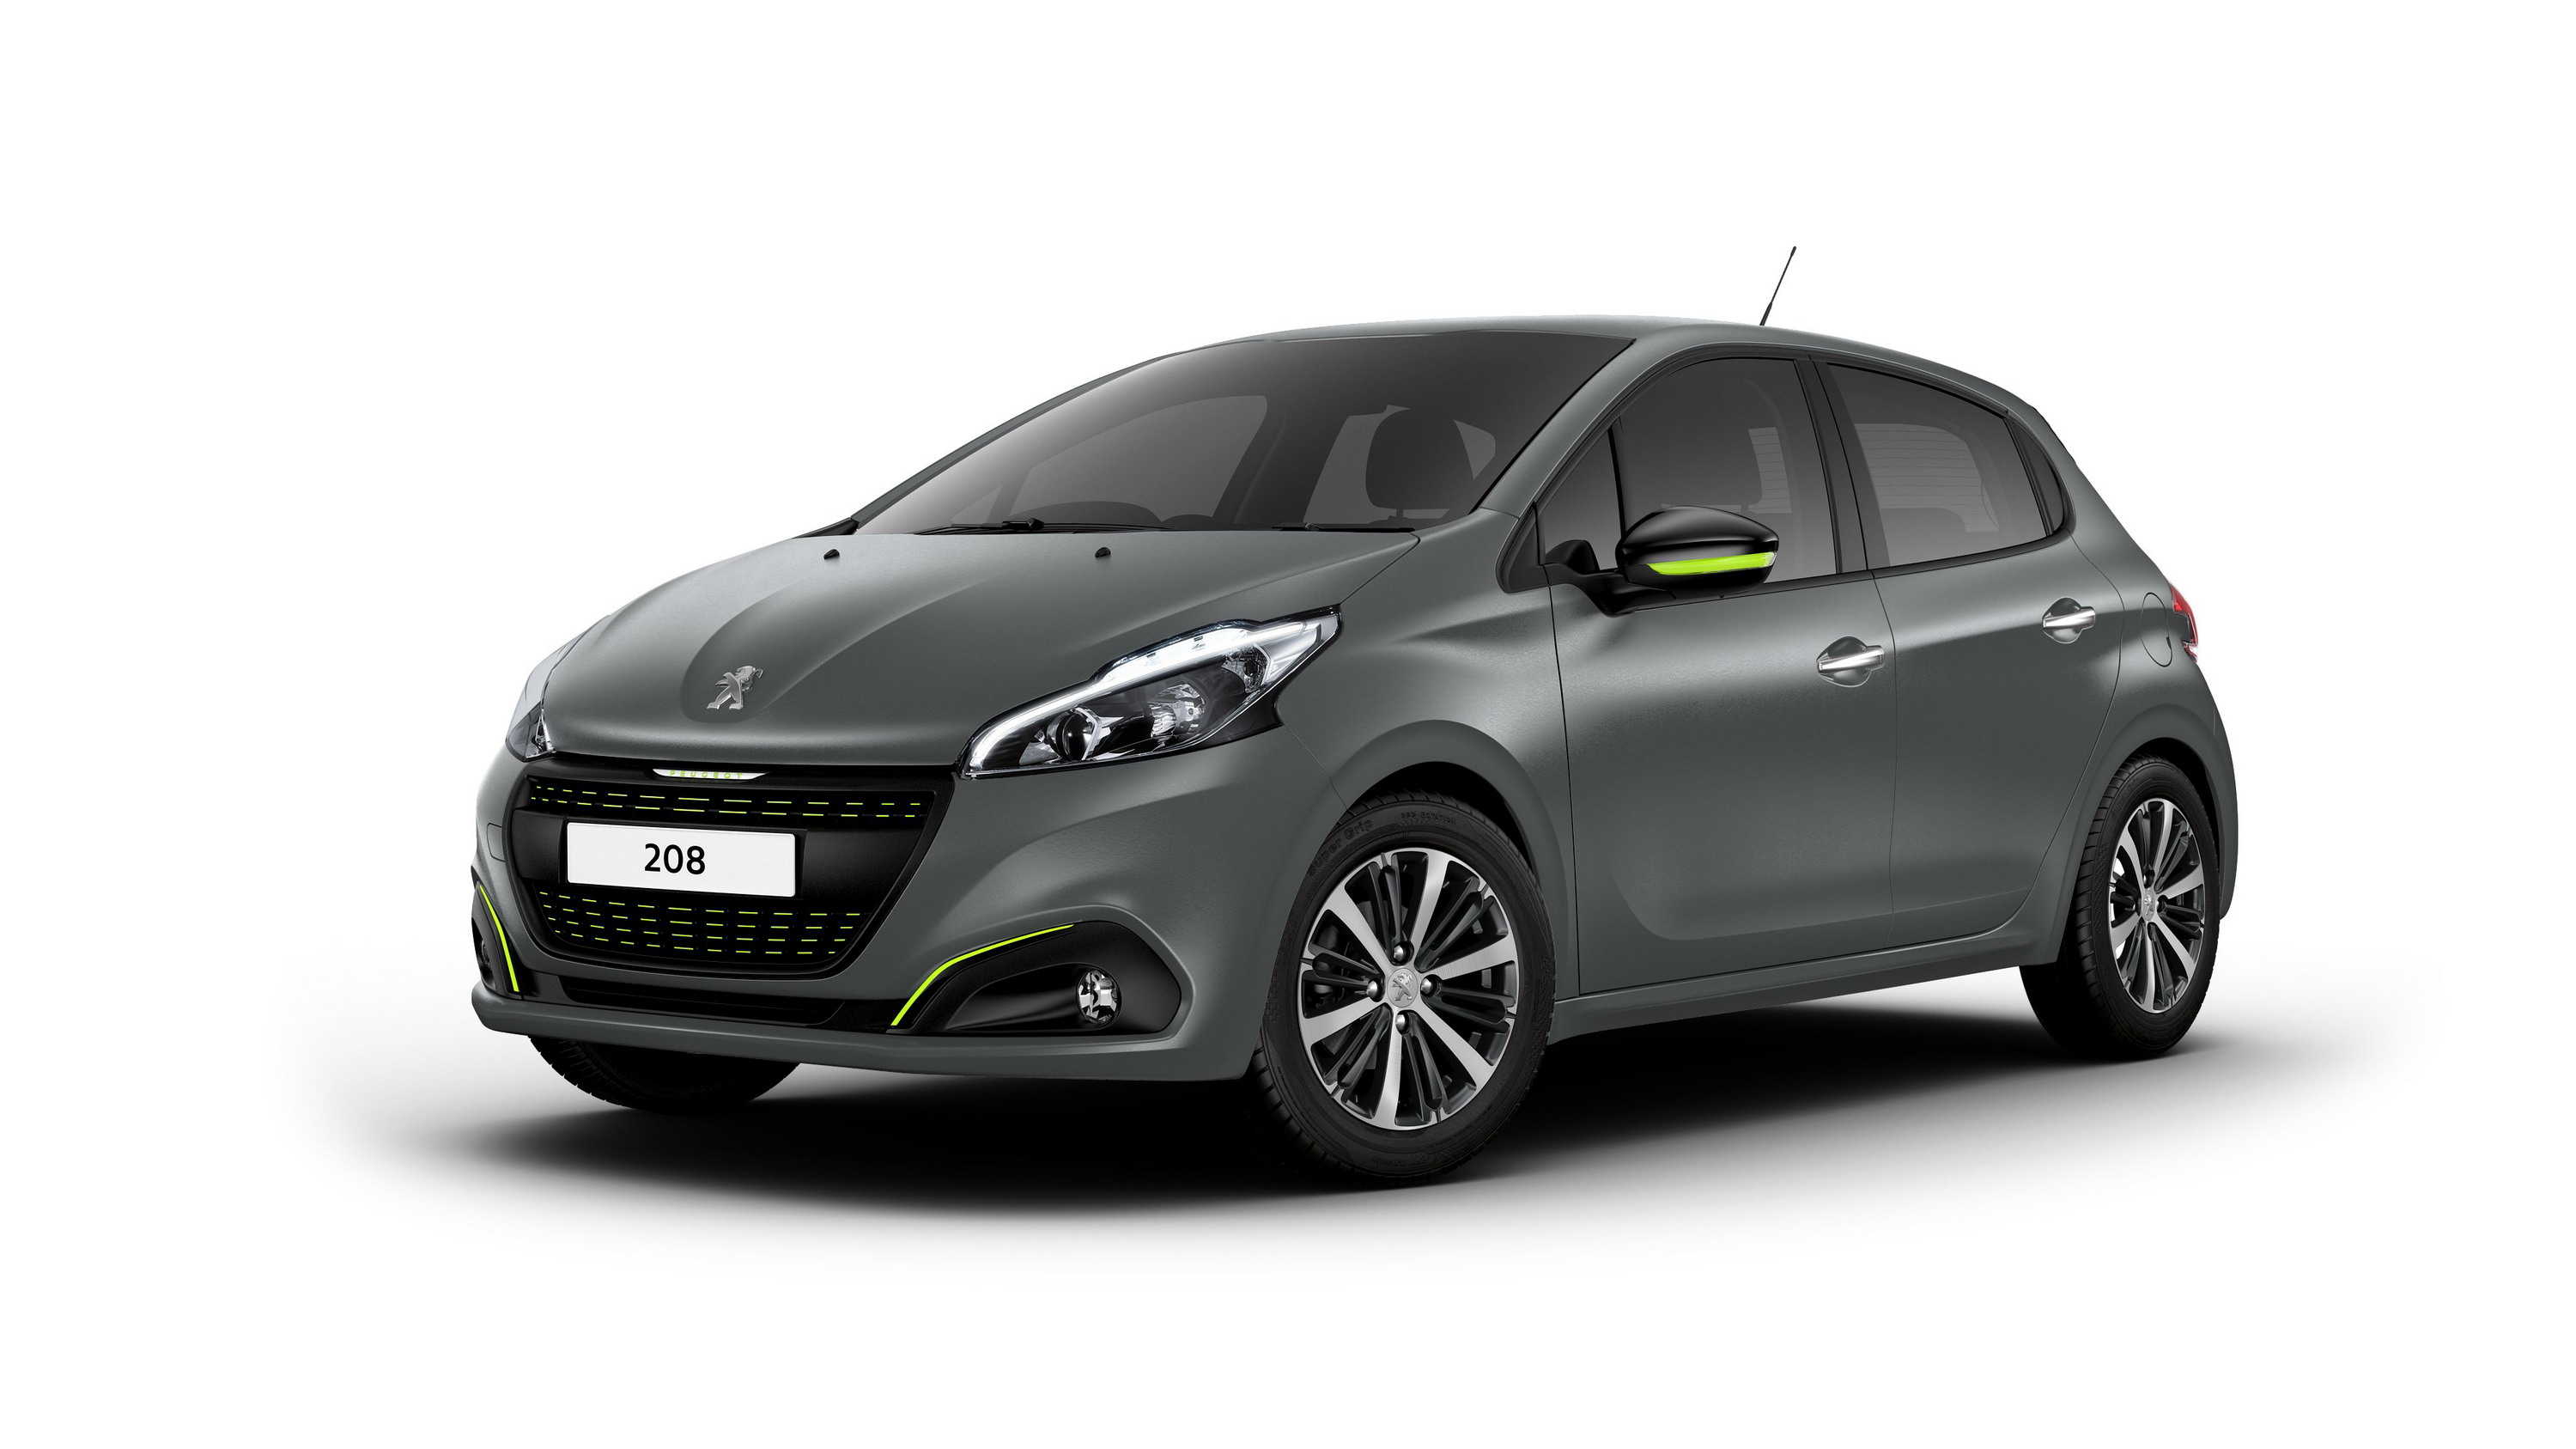 2016 Peugeot 208 XS Special Edition | Top Speed